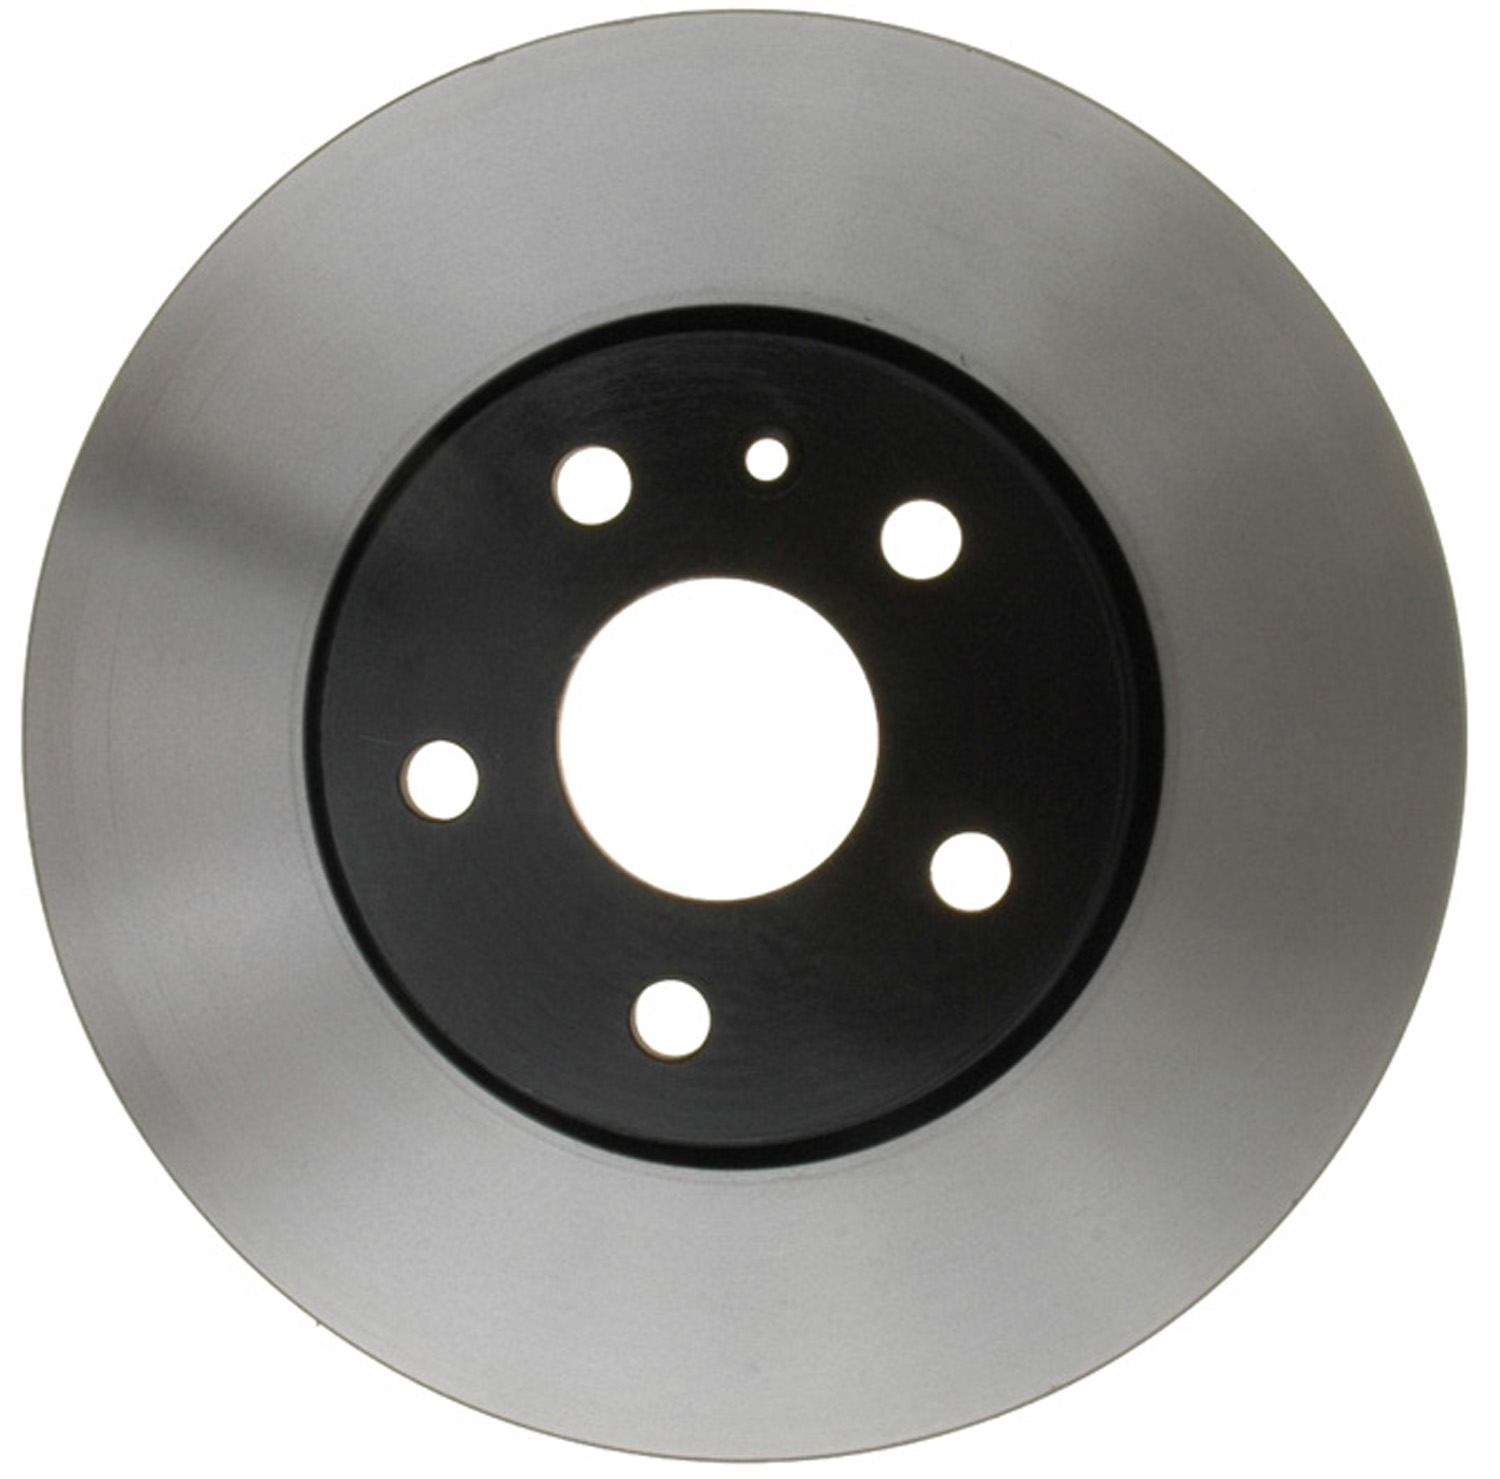 ACDELCO GOLD/PROFESSIONAL BRAKES - Black Hat (Front) - ADU 18A2719